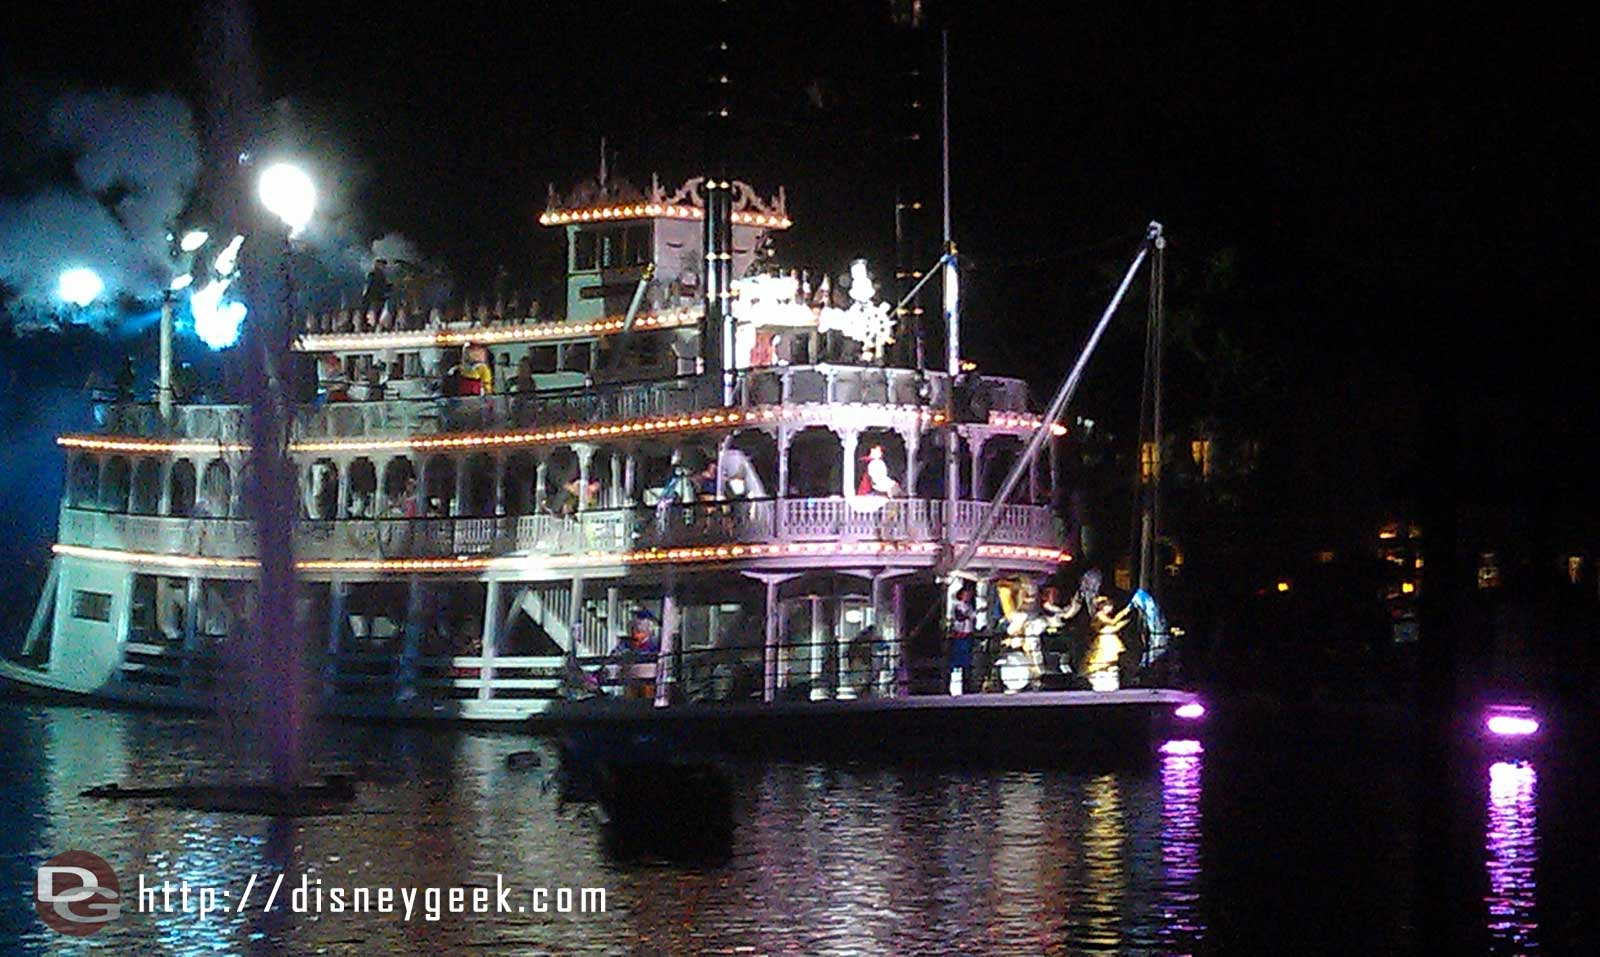 Great to see the Mark Twain back in Fantasmic